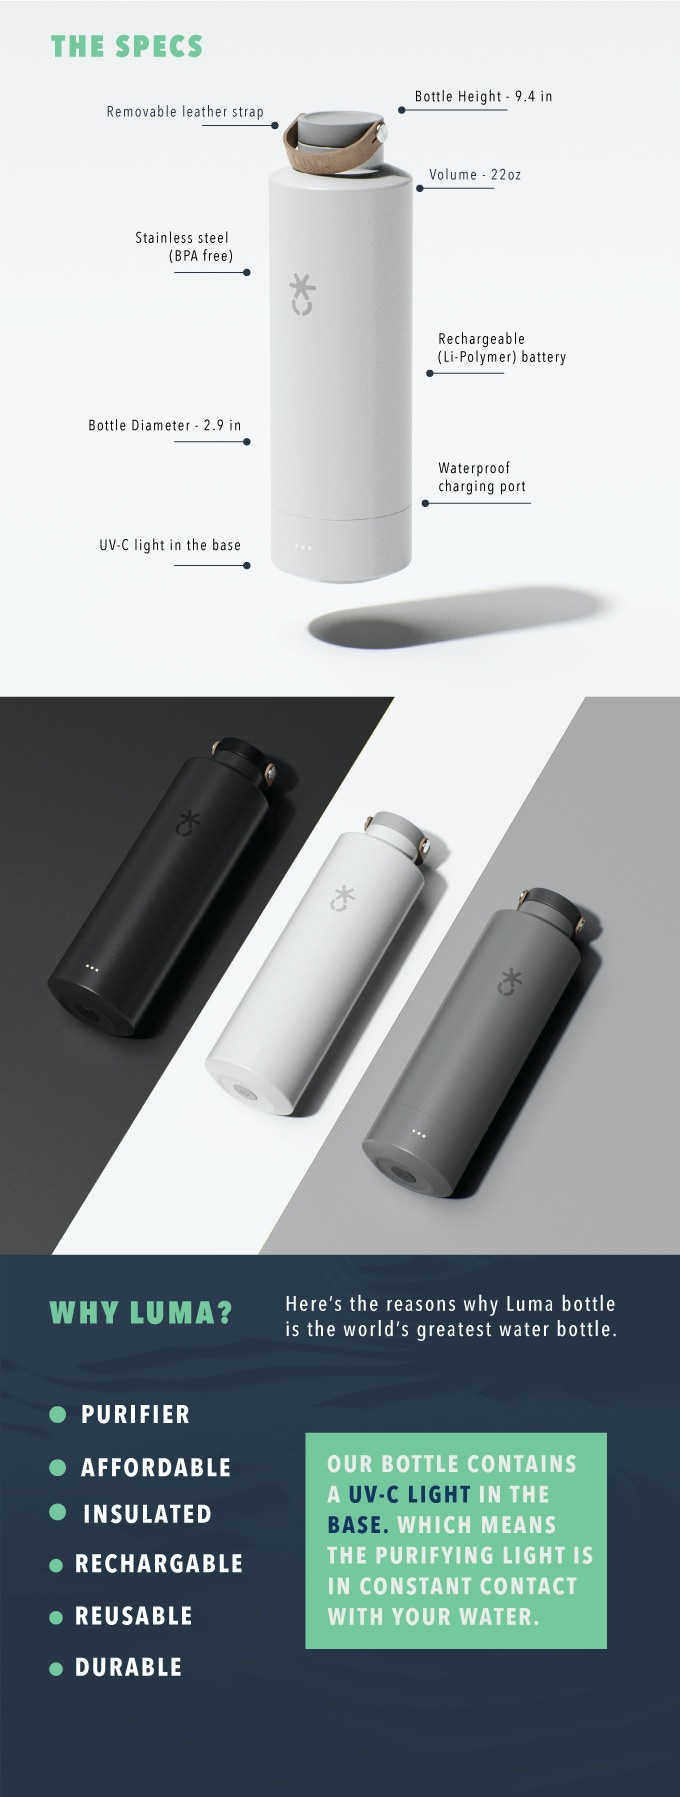 The Luma Bottle | A Self-Cleaning Reusable Water Bottle by